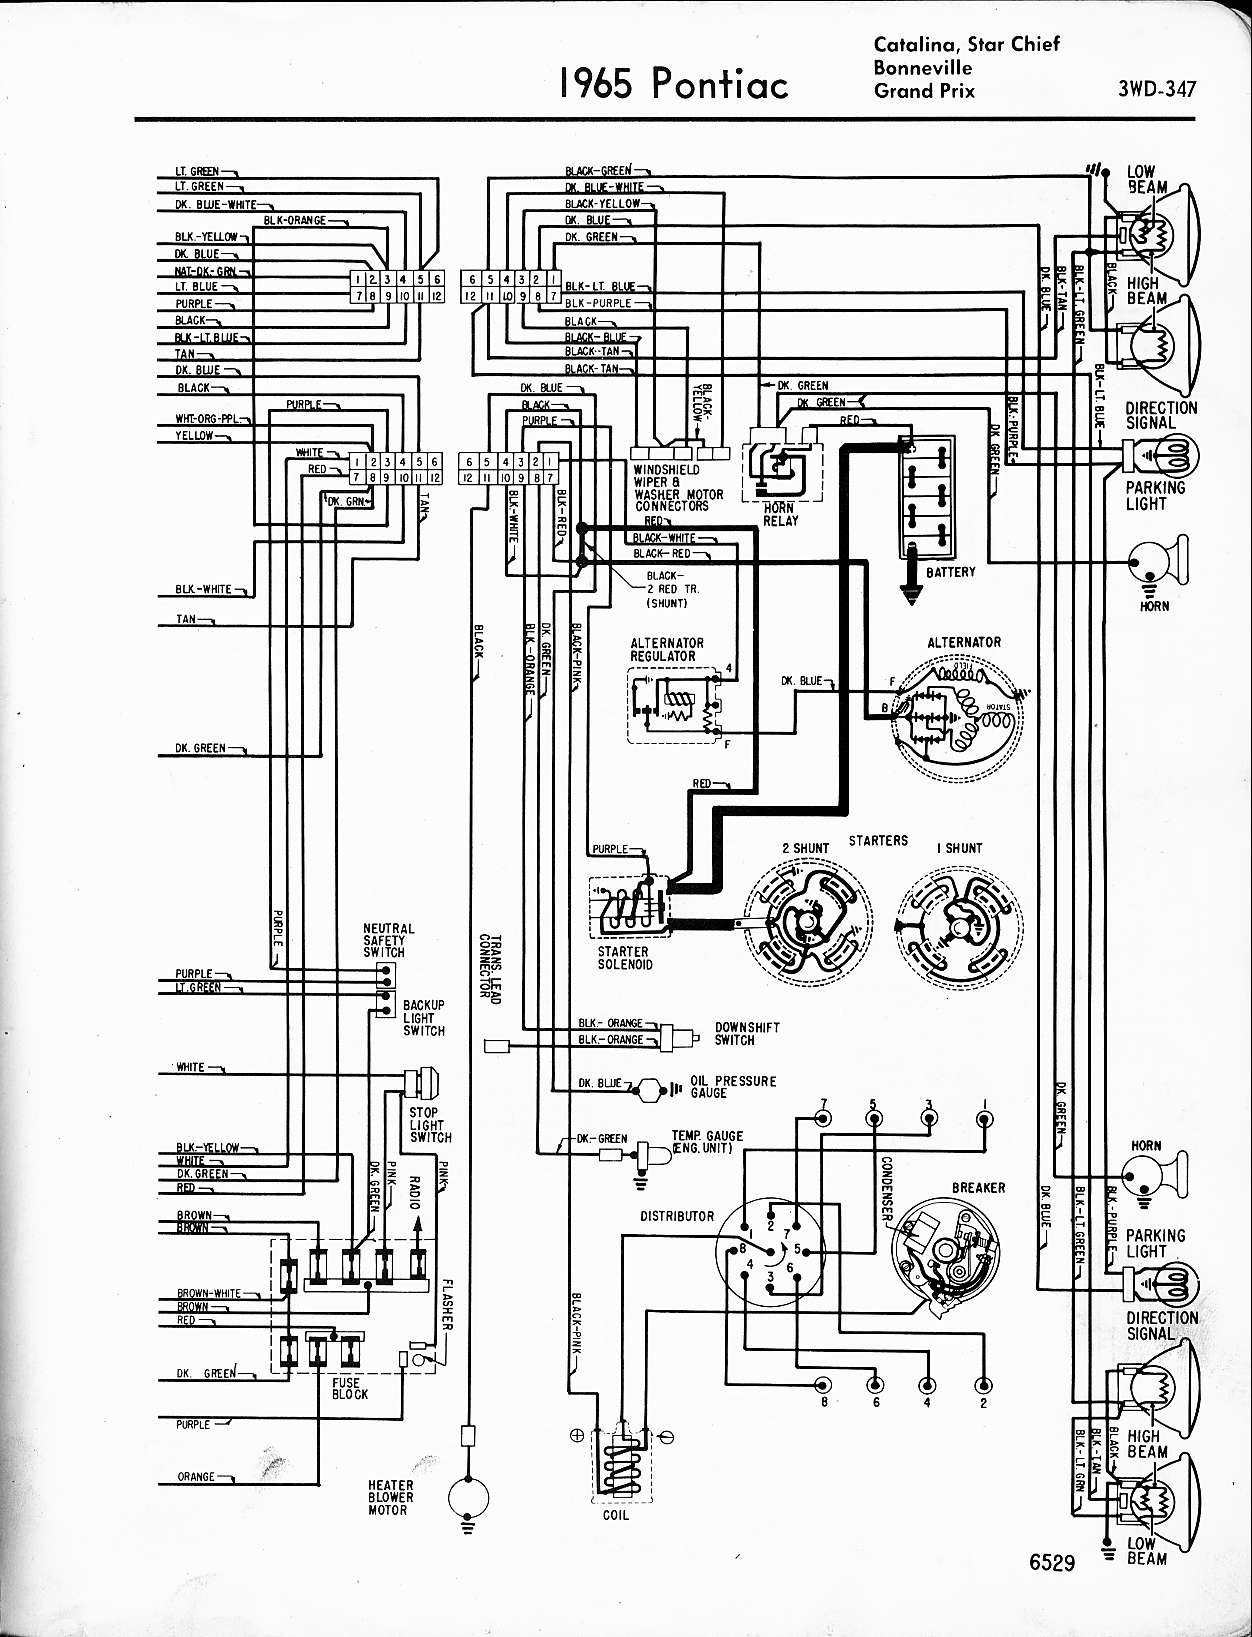 [ZTBE_9966]  D3DB 1938 Buick Wiring Diagram Schematic | Wiring Library | Free Download Gsr Series Wiring Diagram |  | Wiring Library